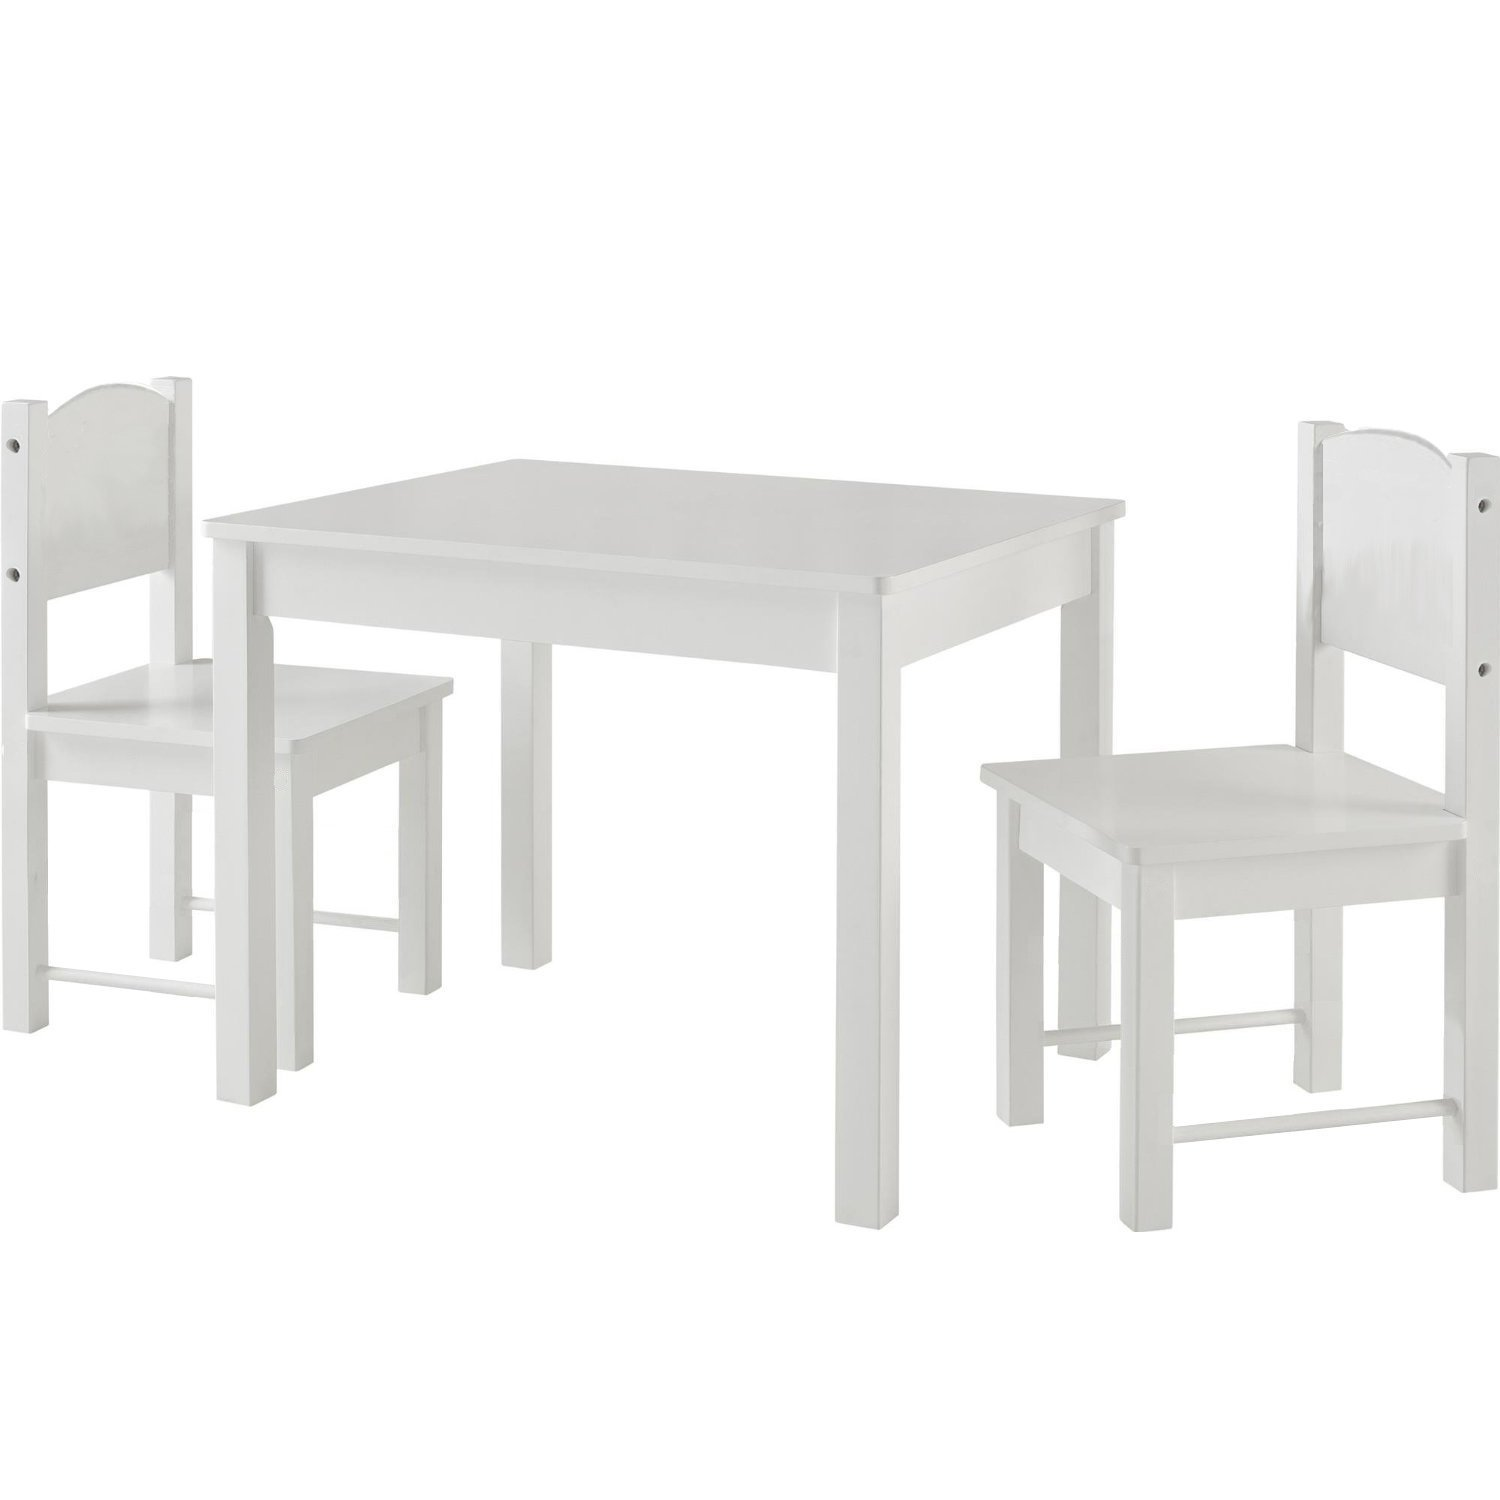 Timy Wooden Kids Table & 2 Chairs Set for for Playing, Learning, Eating, White by Timy